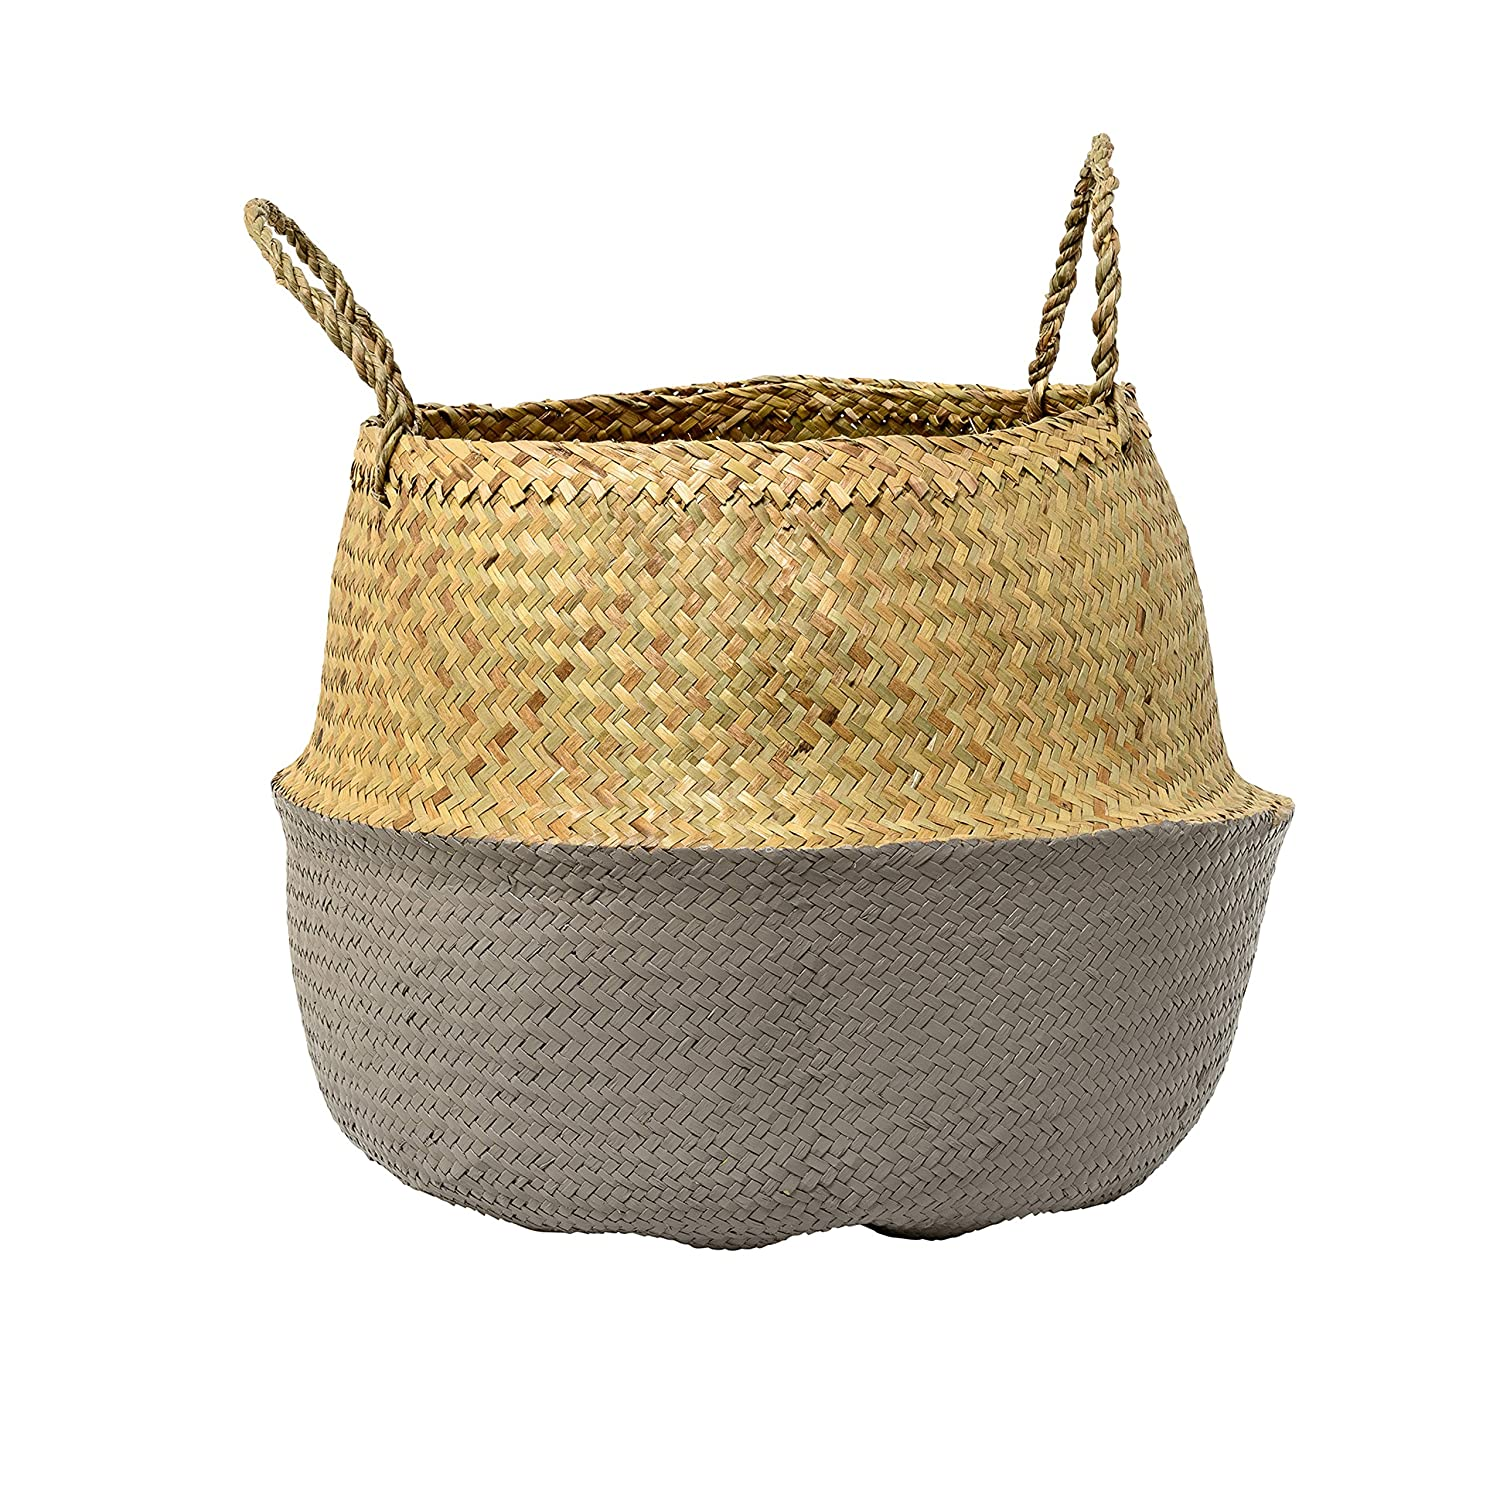 Bloomingville A928004 Medium Beige Collapsible Seagrass Basket with Handles